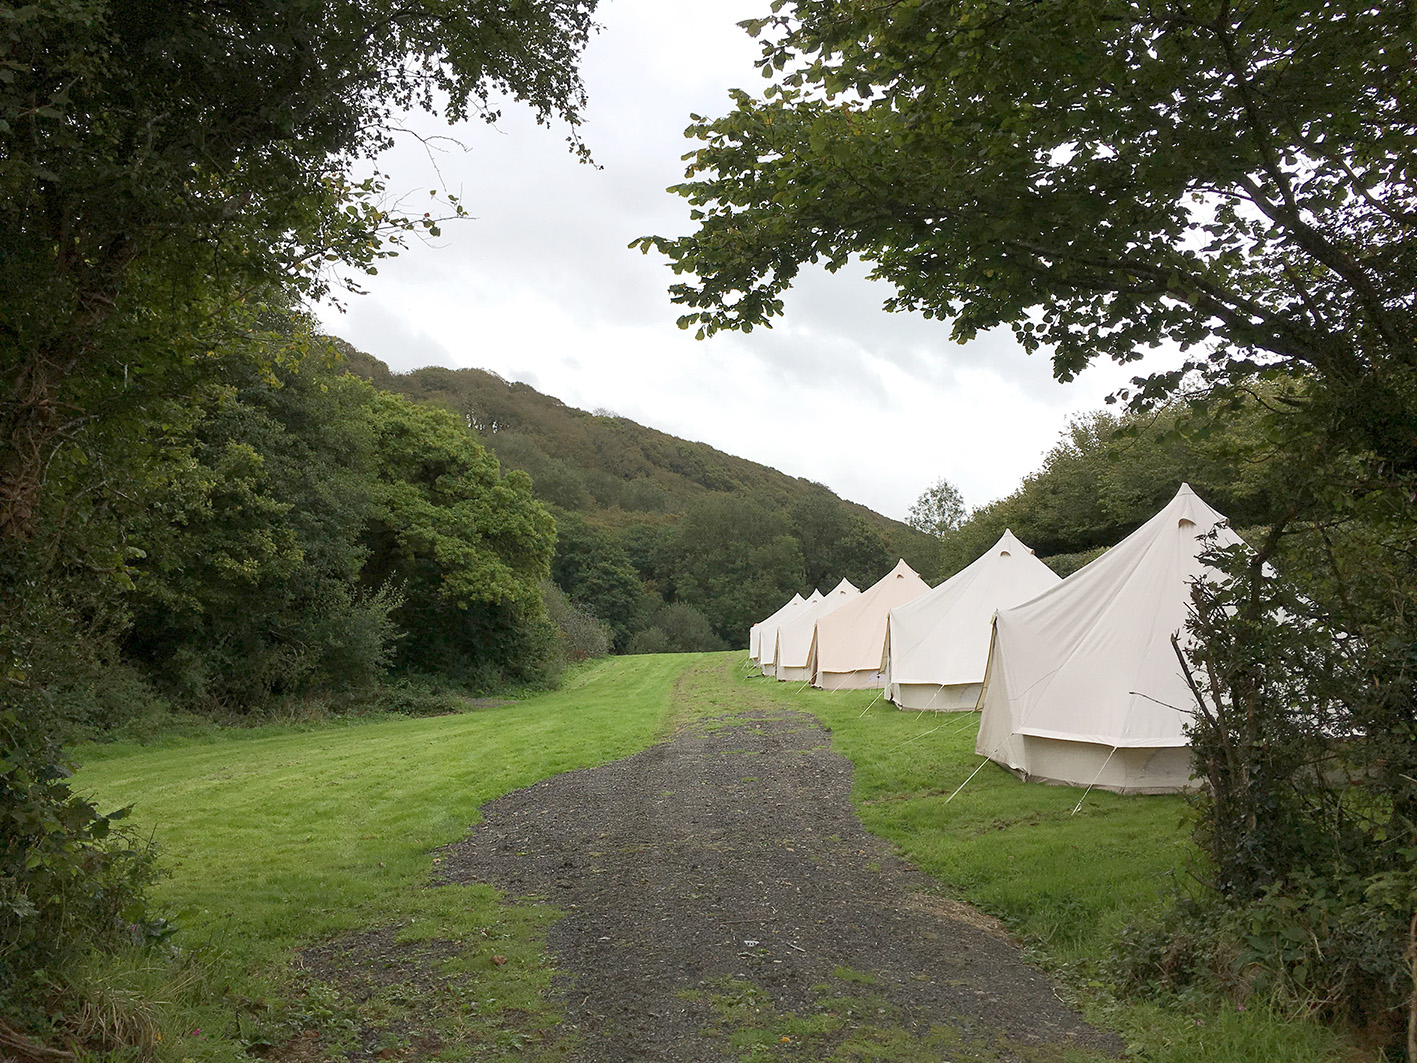 Wild camping meadow field with glamping tents at Pengenna Manor wedding venue in Cornwall.jpg